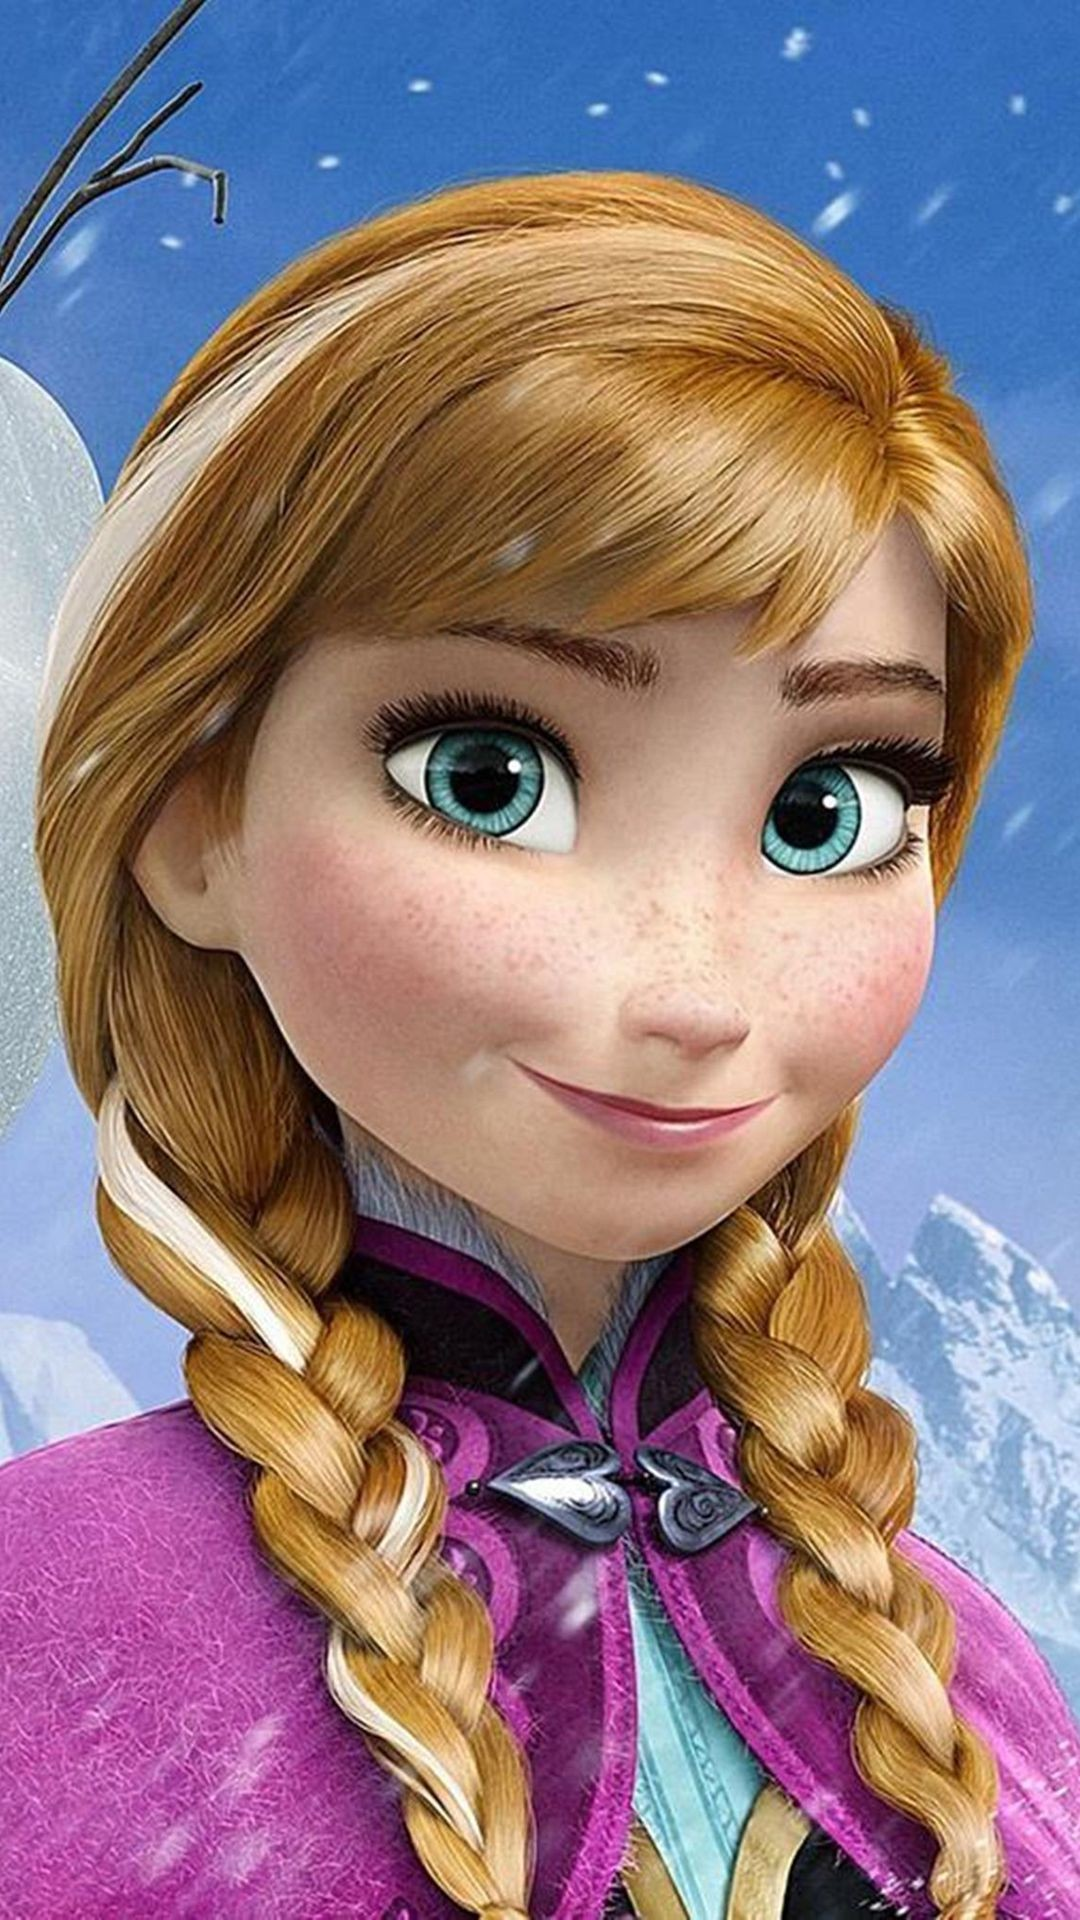 Frozen Anna - Best htc one wallpapers, free and easy to ...